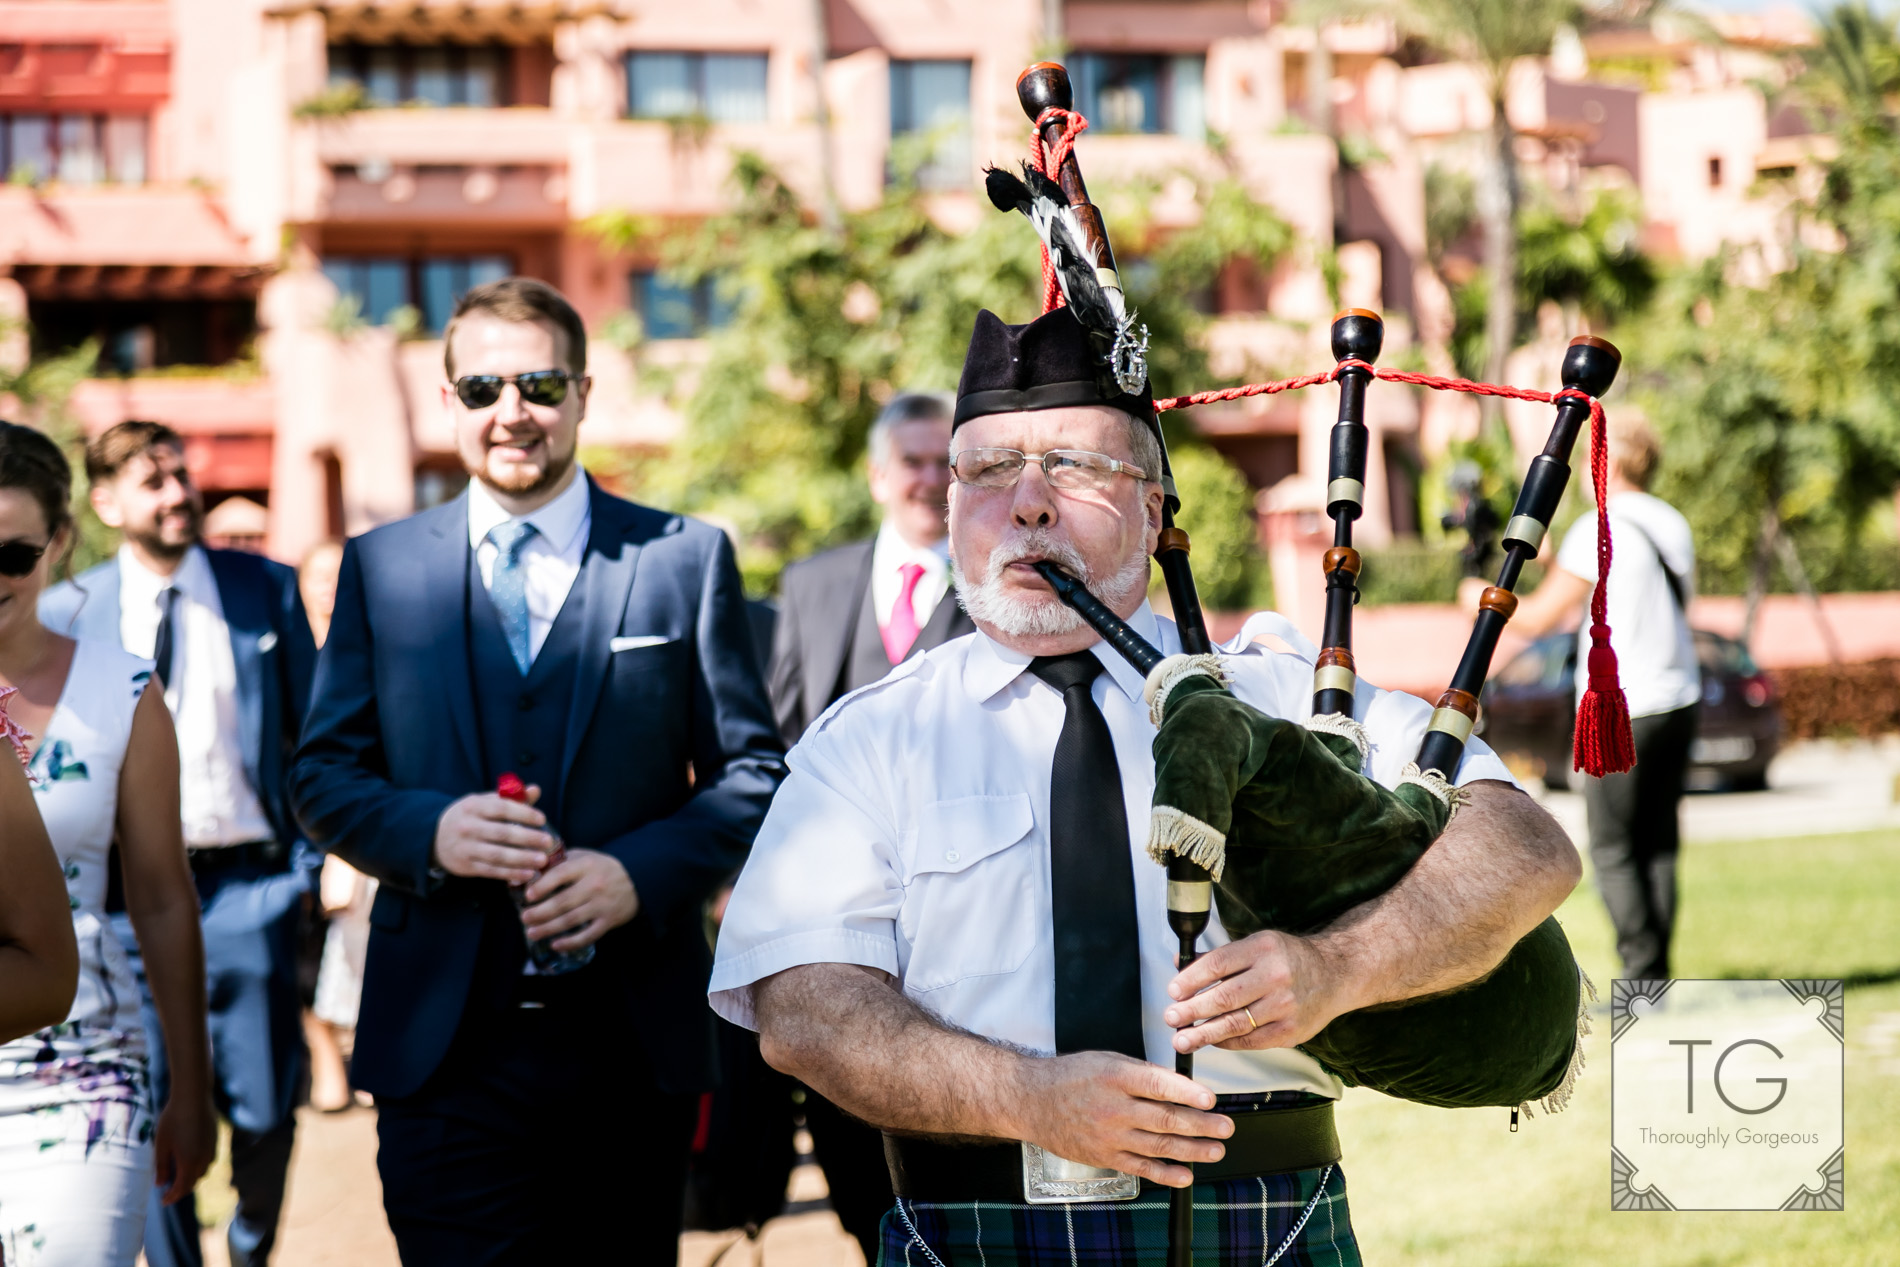 Scottish piper leads weddings guests to beach